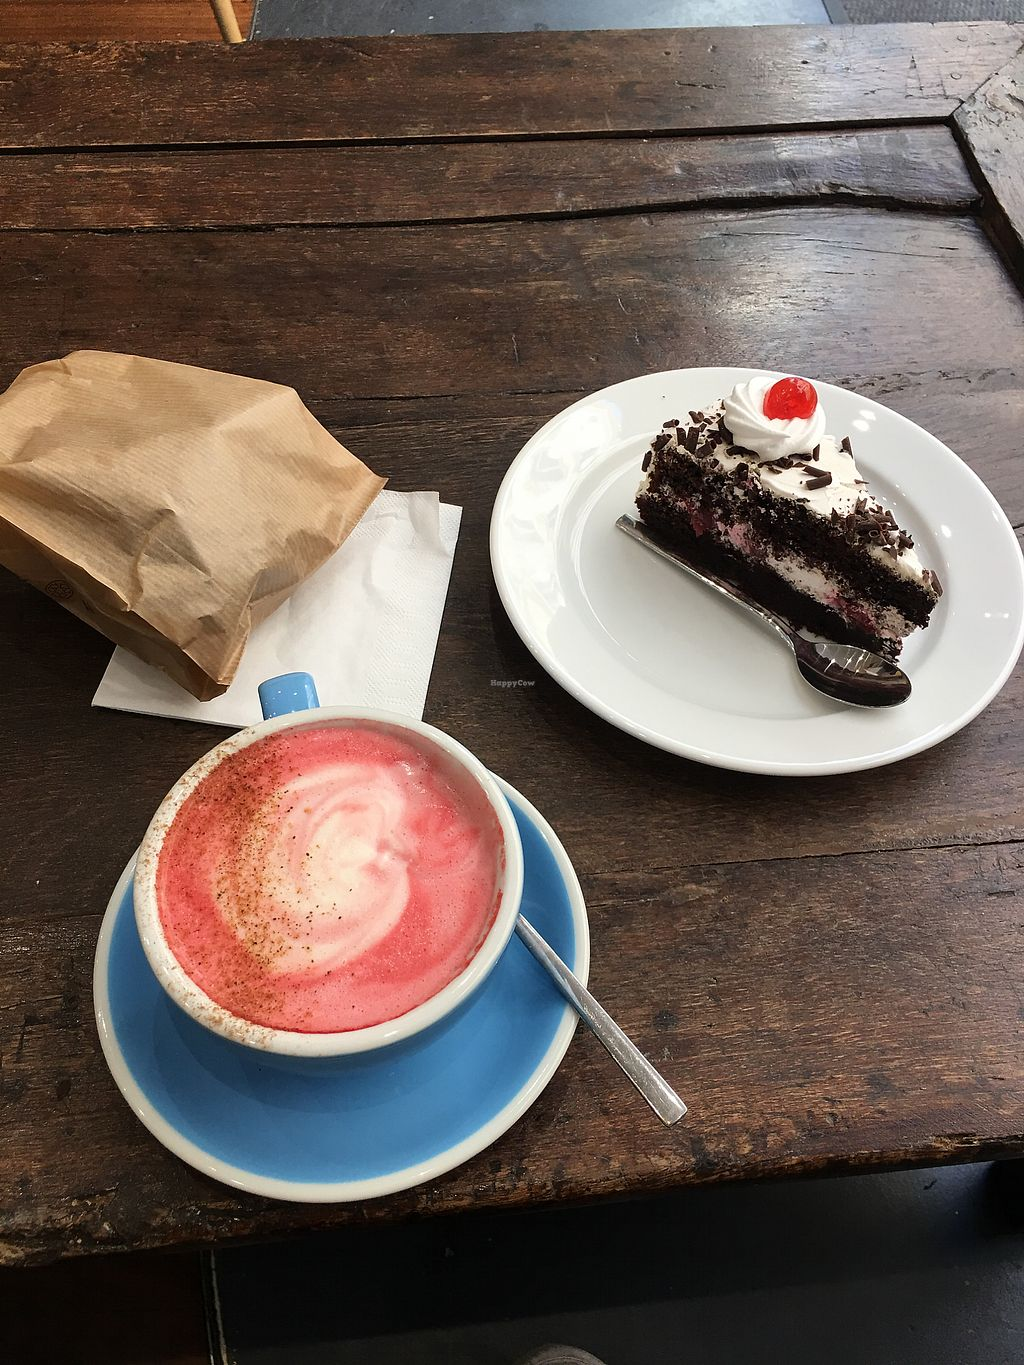 "Photo of Cloud Cakes  by <a href=""/members/profile/lvasquared"">lvasquared</a> <br/>Beetroot latte and cake <br/> May 5, 2018  - <a href='/contact/abuse/image/80175/395660'>Report</a>"